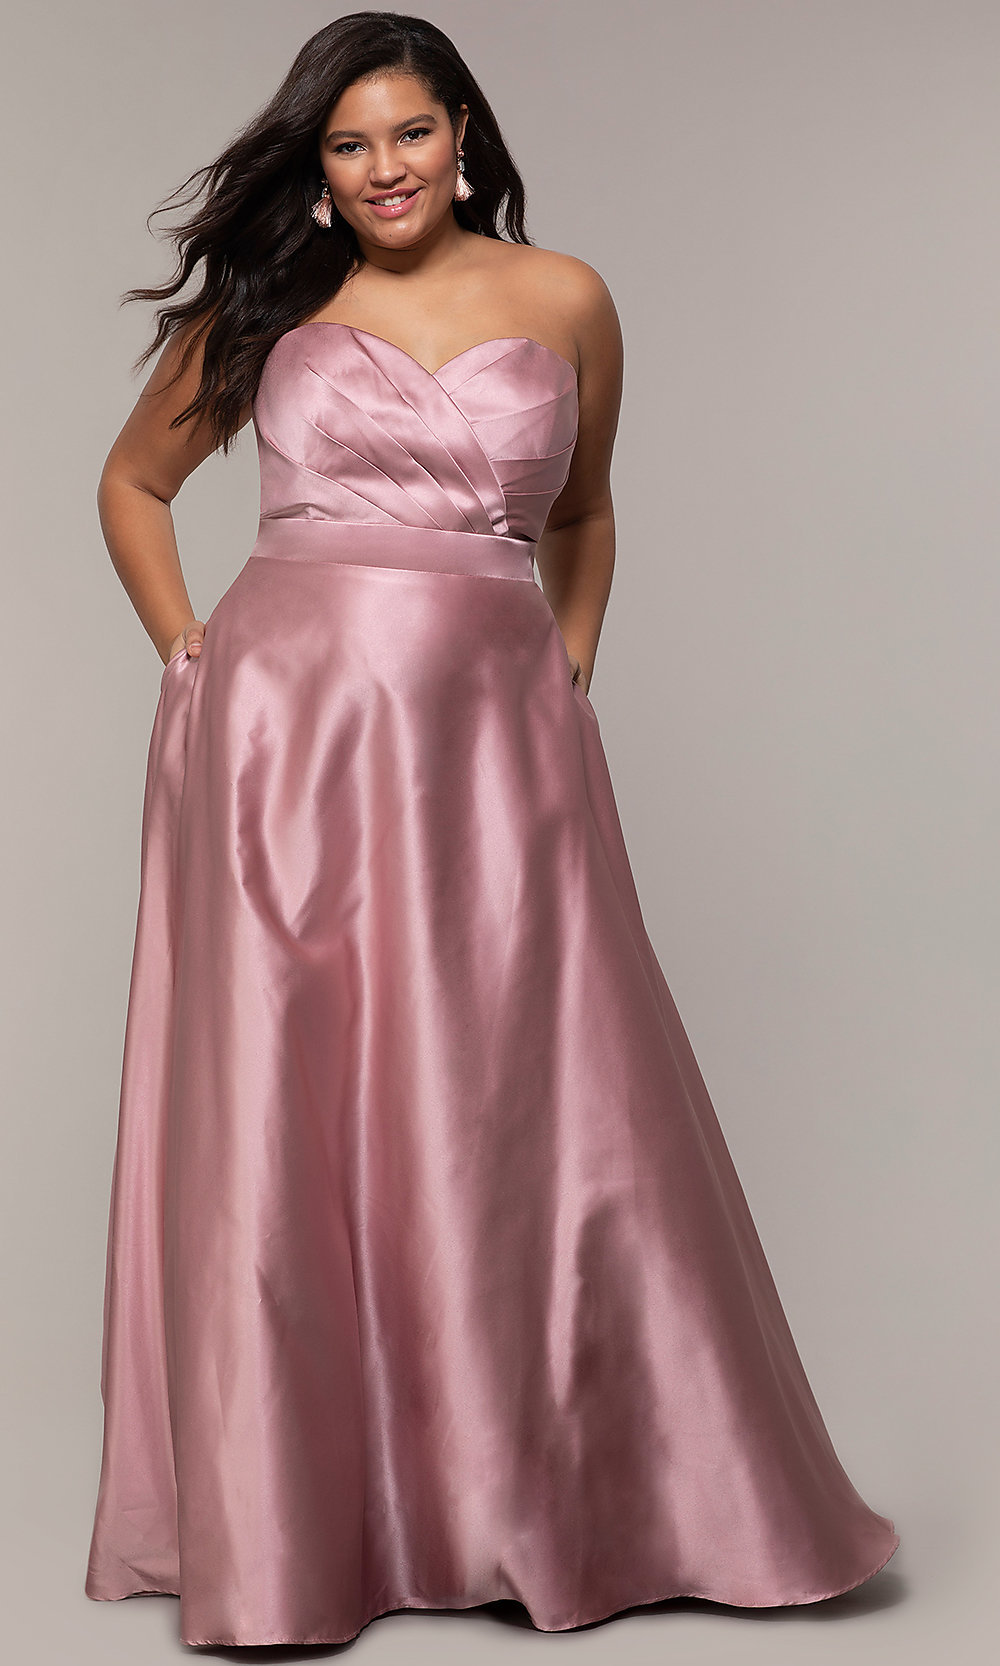 Corset Plus-Size Long Formal Dress with Pockets